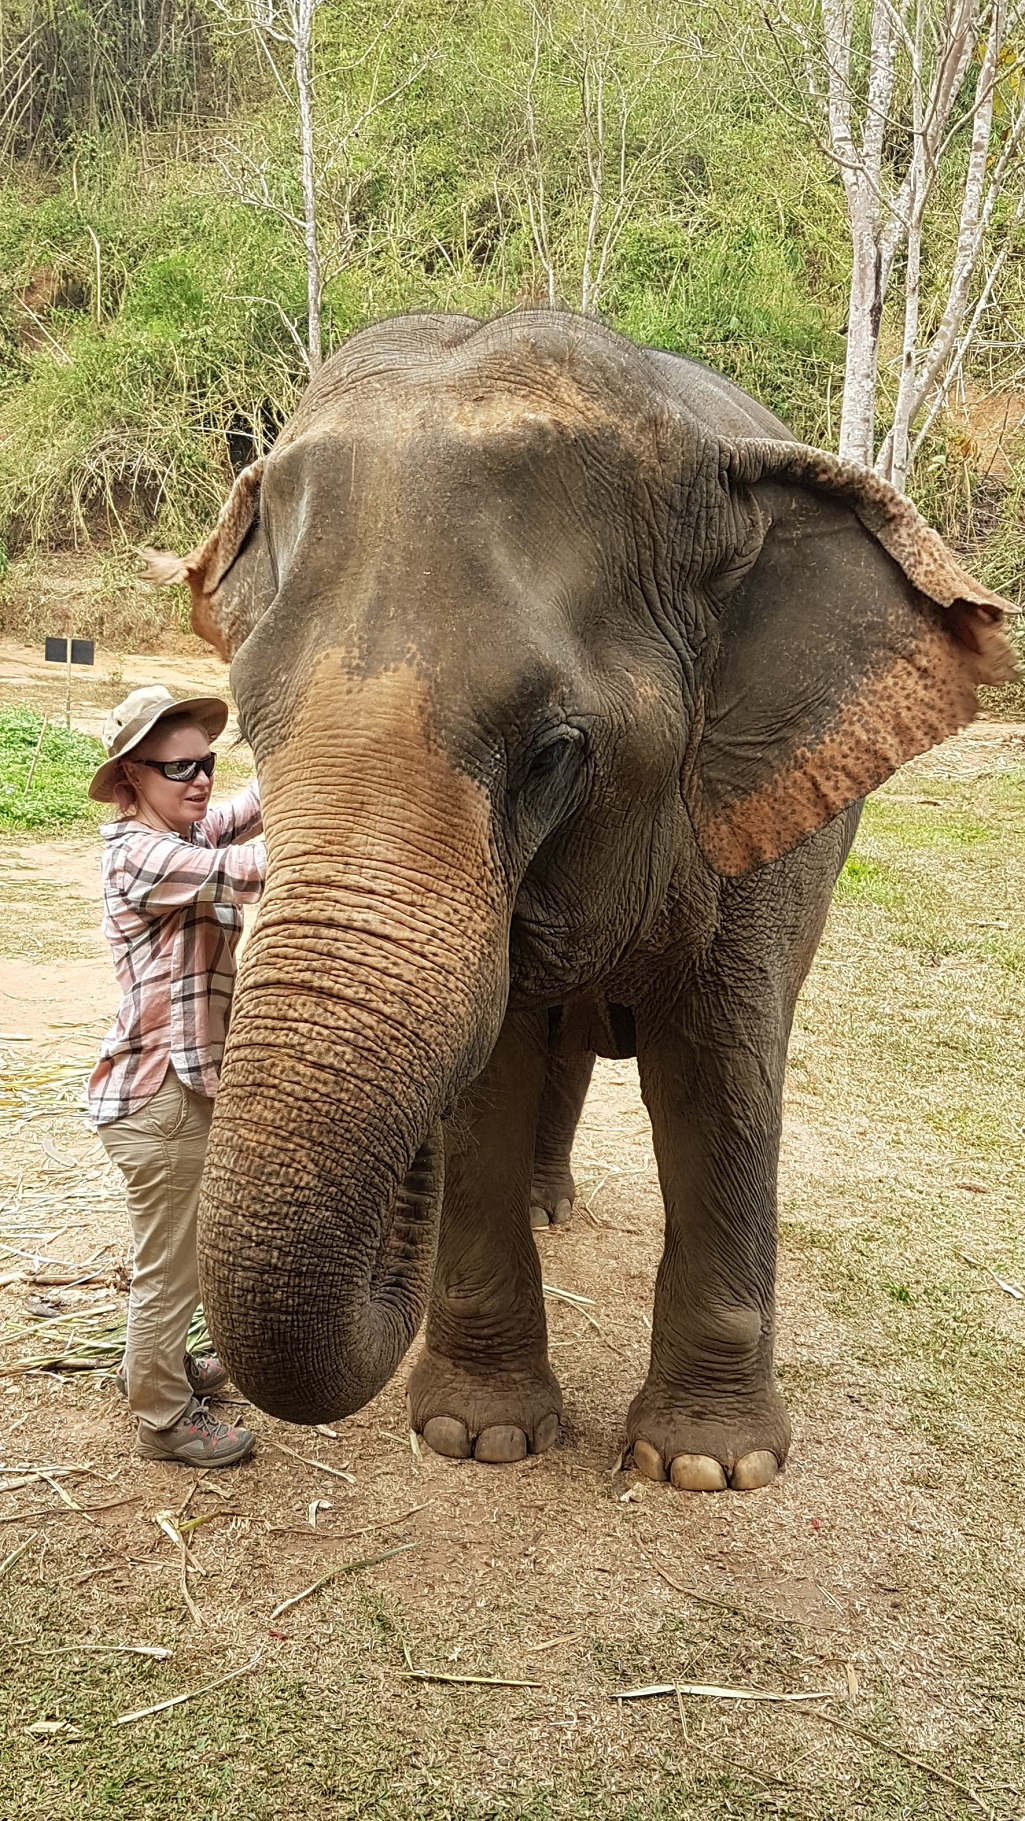 Me treating an elephant